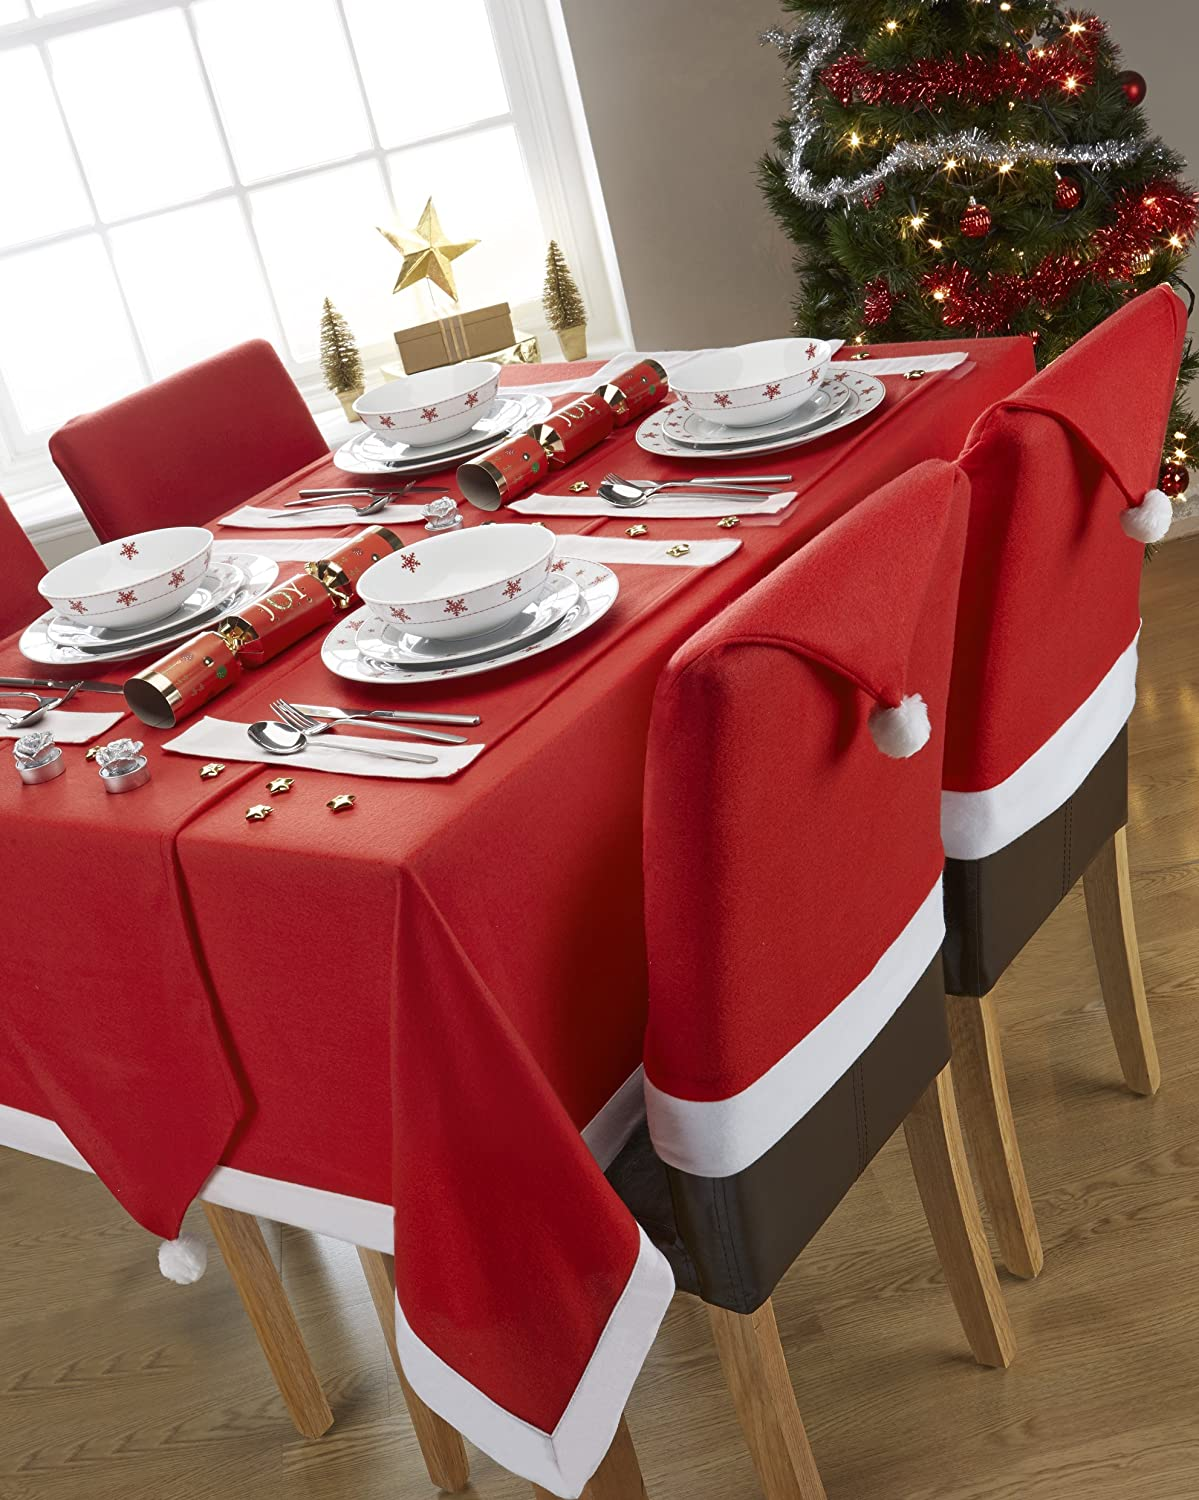 Santas Table Red And White Rectangular Tablecloth Ideal For 4 6 Place Settings 52x70inch 132x178centimeter Approx Amazoncouk Kitchen Home